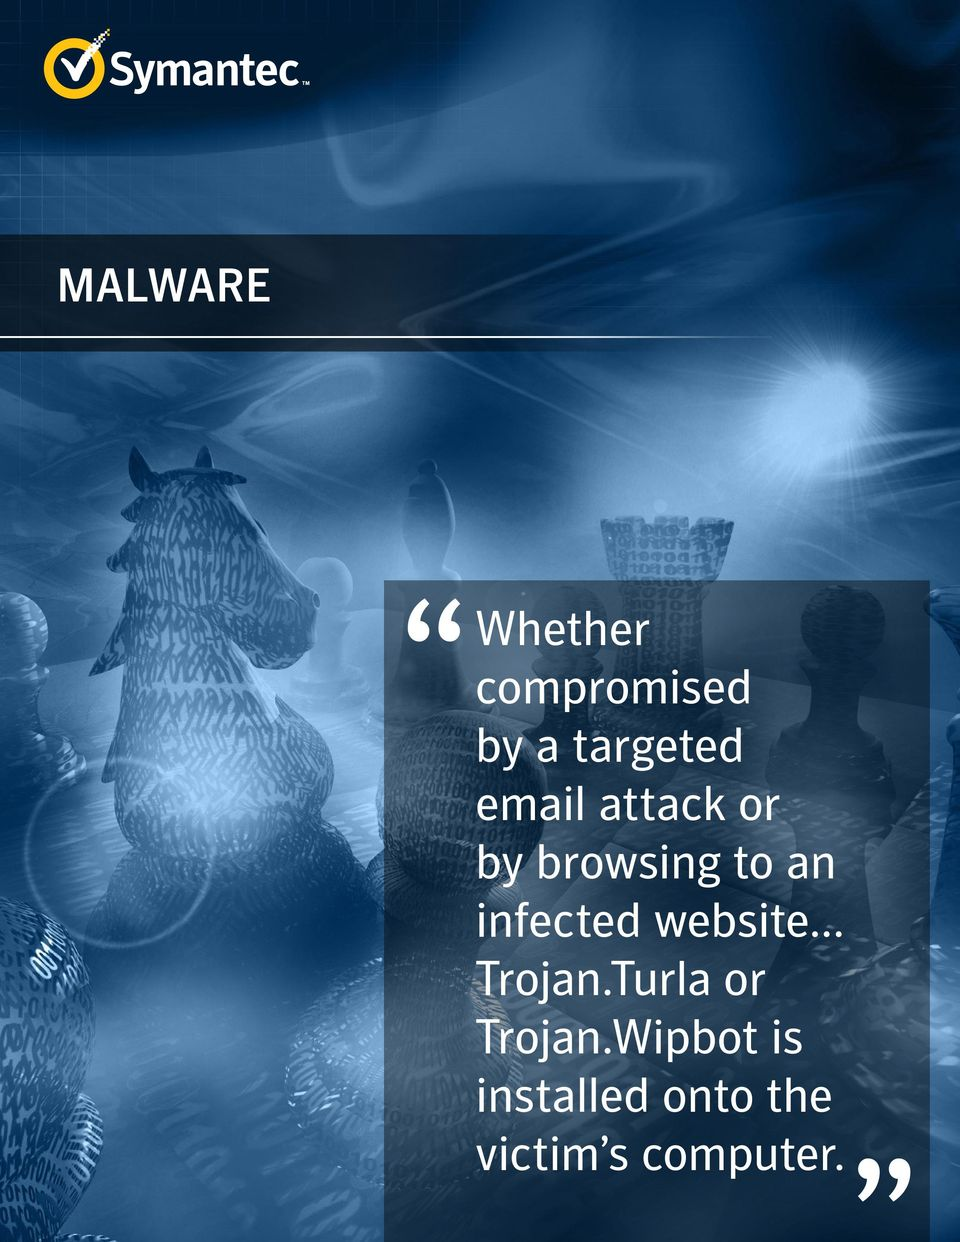 infected website... Trojan.